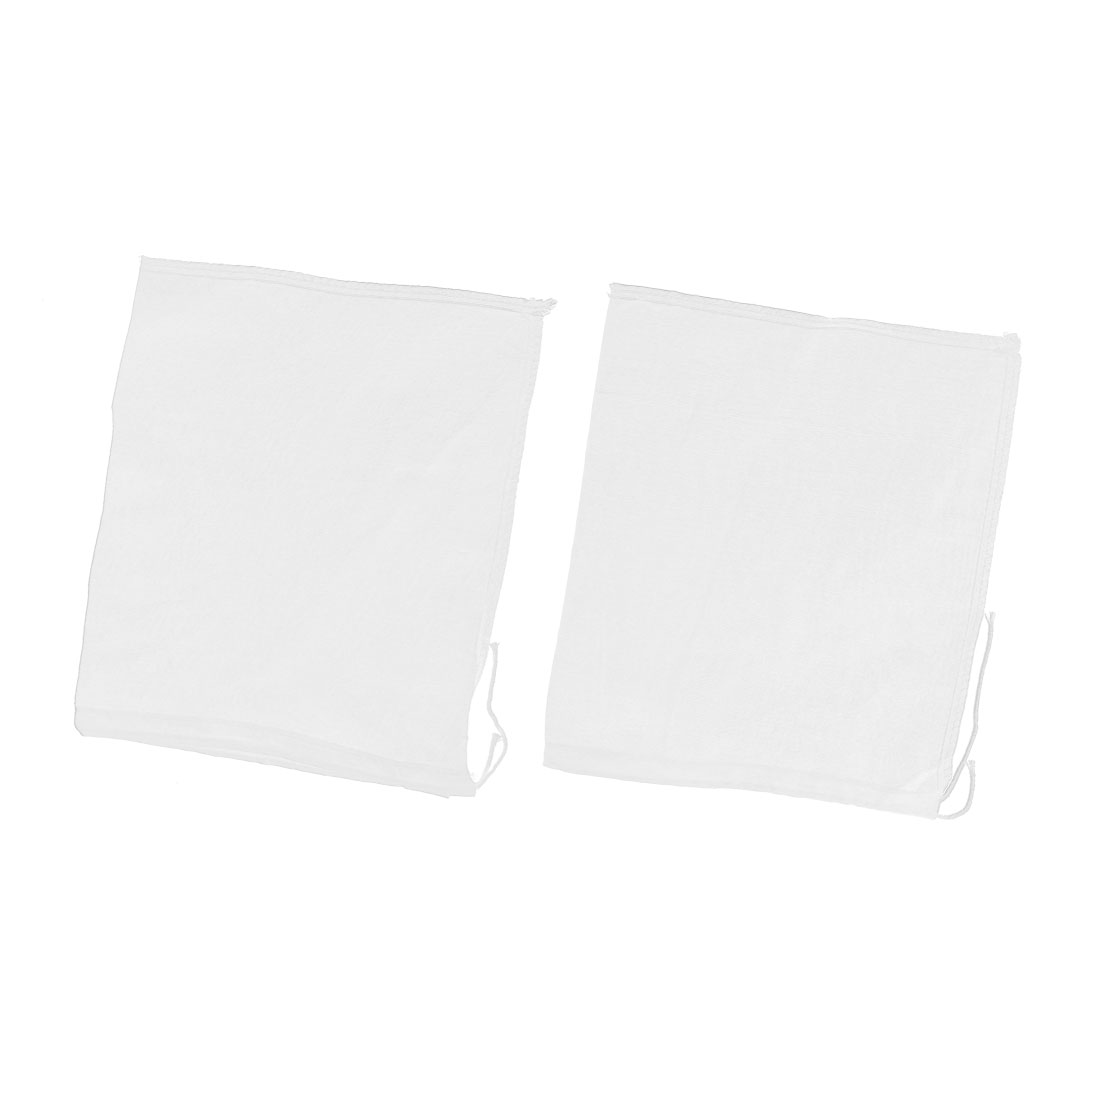 2 Pcs Drawstring Seal Soup Food Filter Mesh Bag 26cm x 23cm White